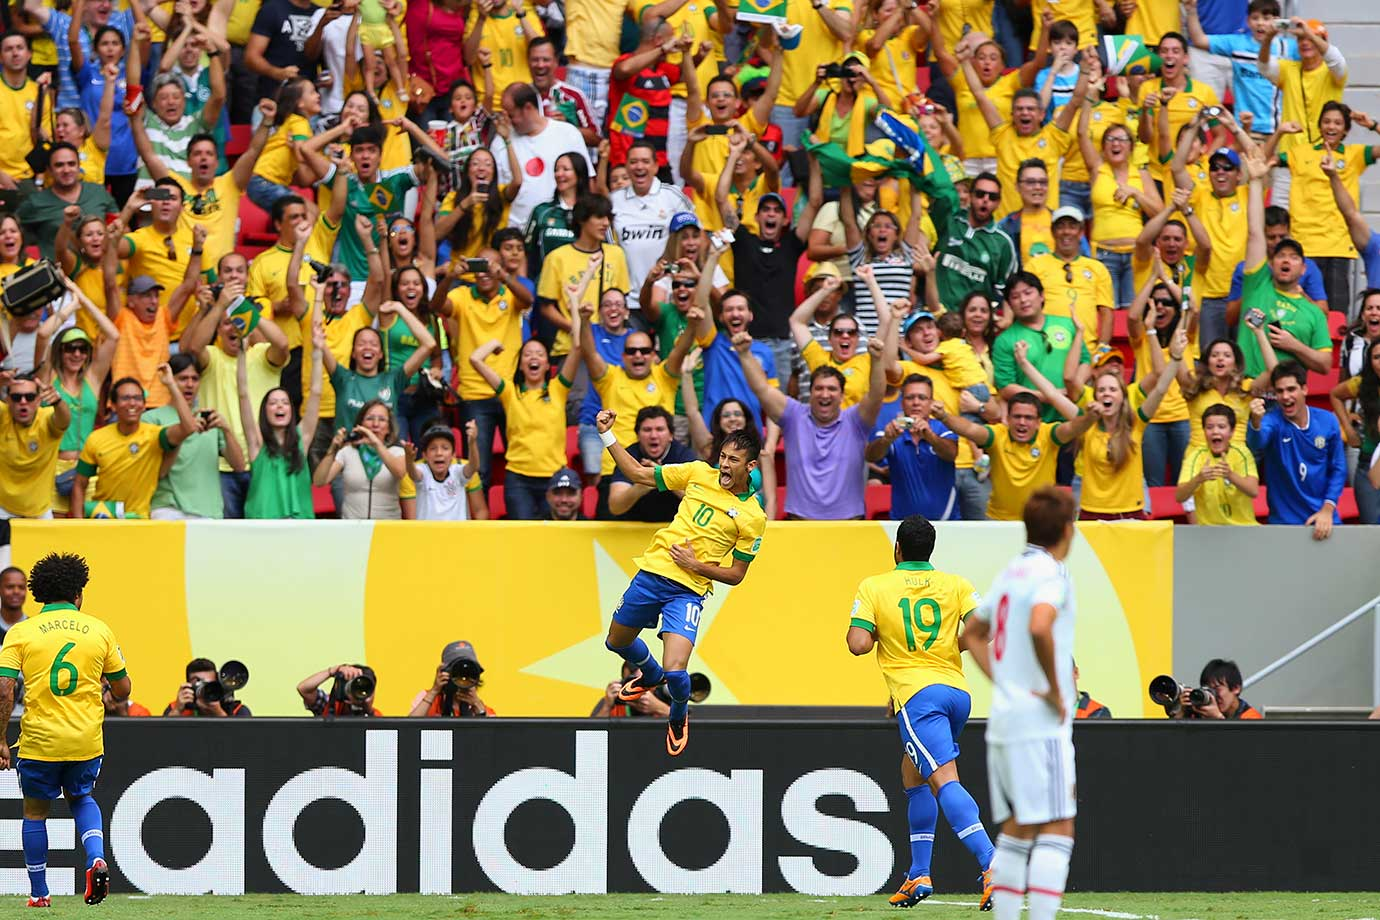 Neymar celebrates after scoring in Brazil's FIFA Confederations Cup match against Japan on June 15, 2013 at Estadio Nacional in Brazil. Brazil won 3-0.